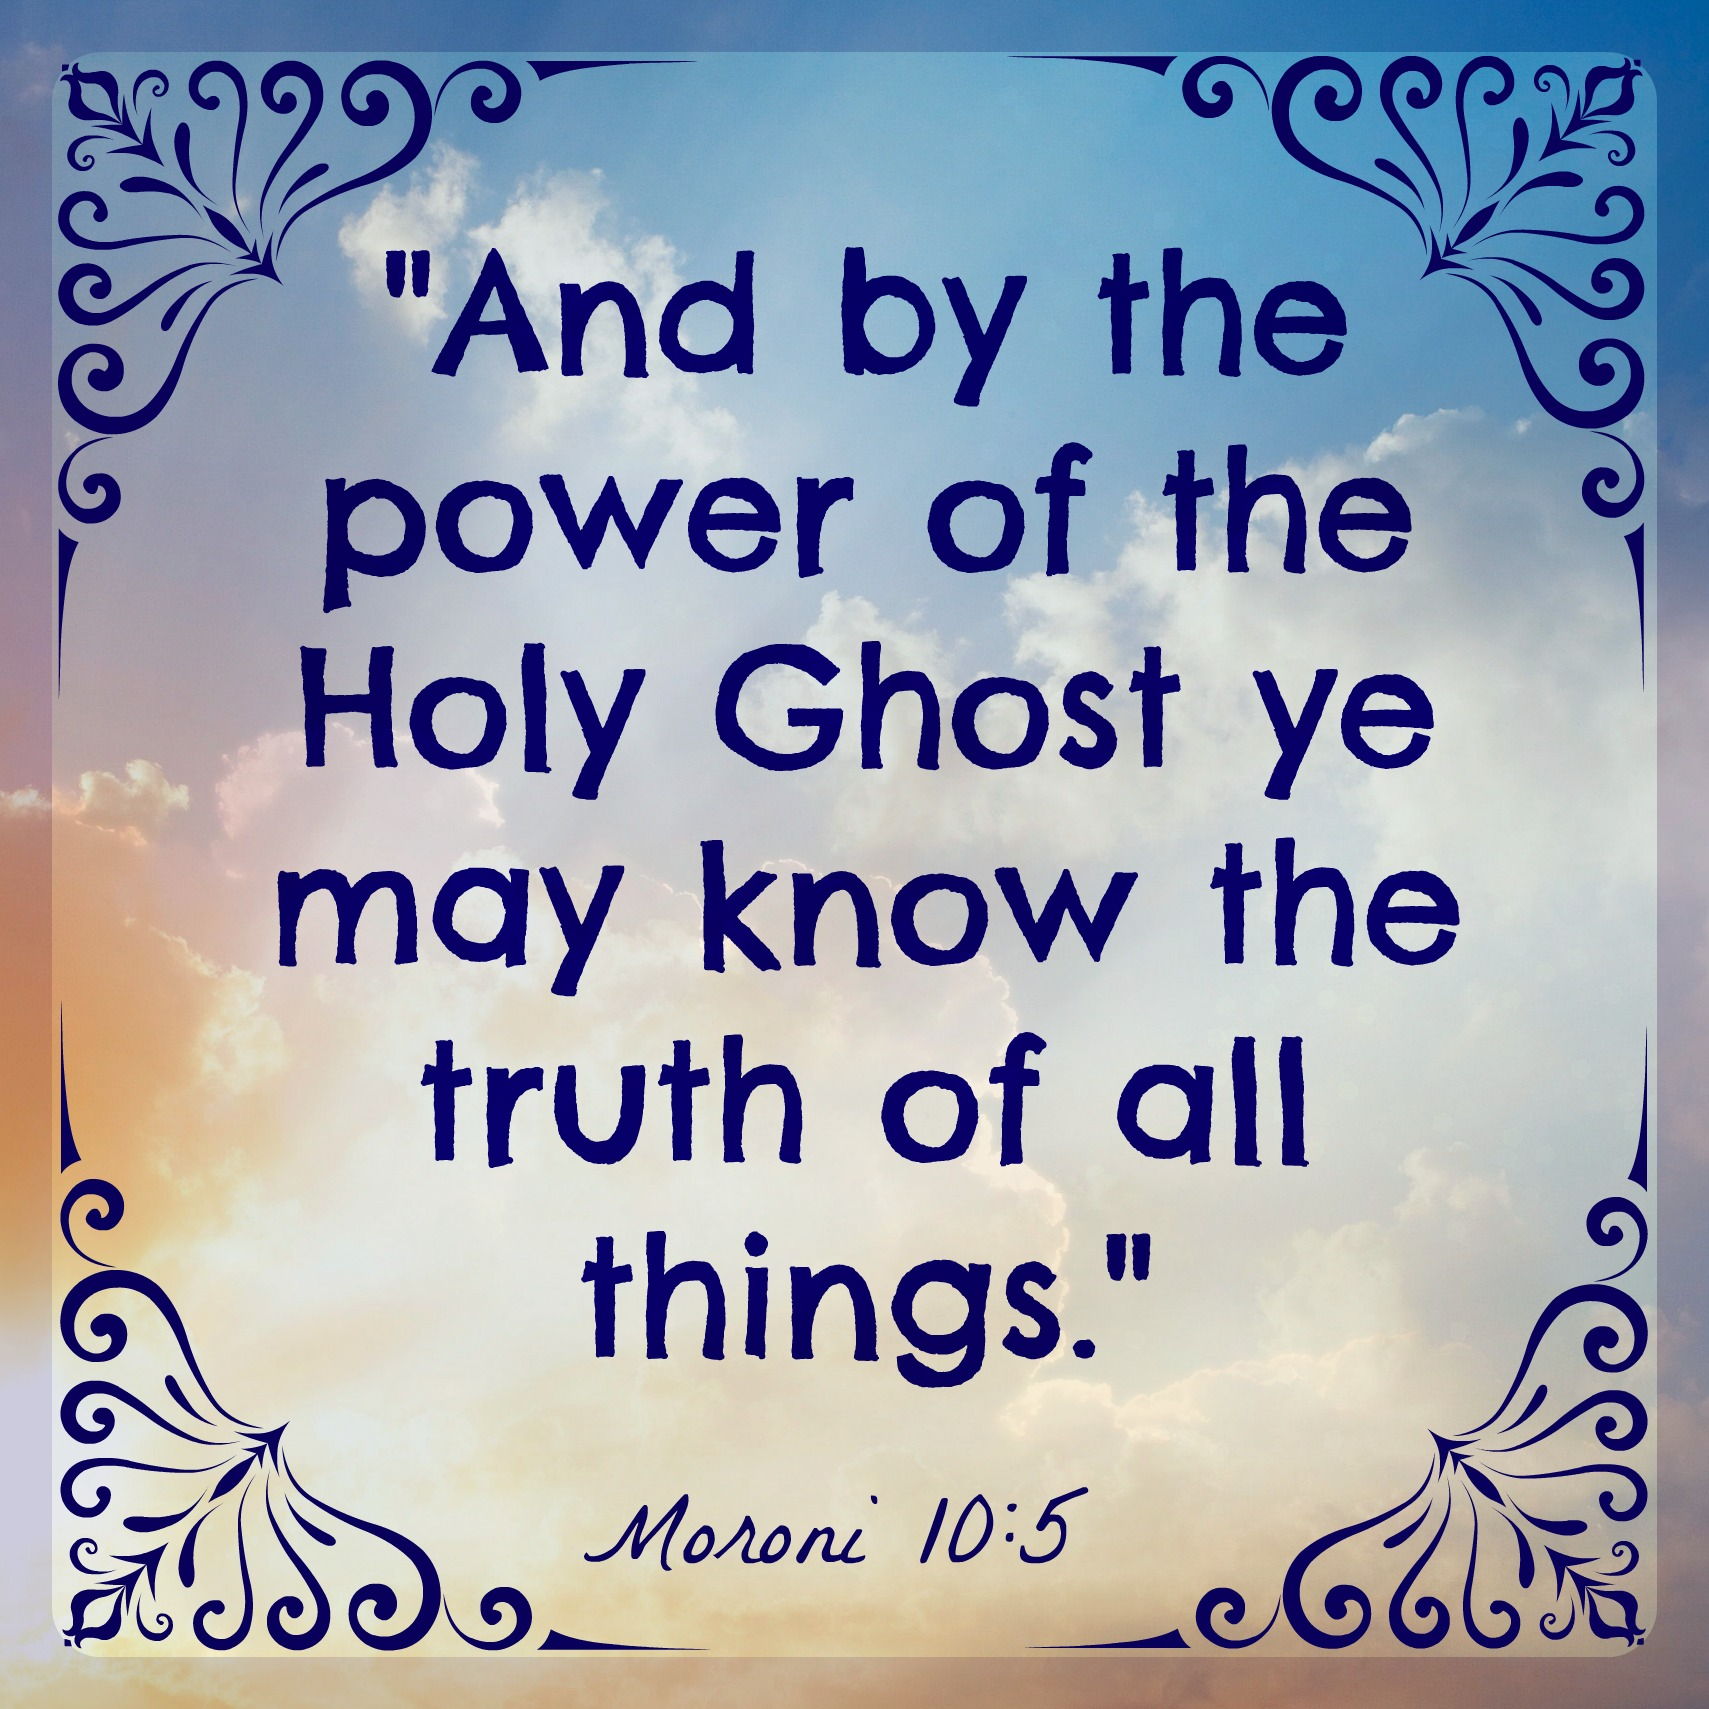 And by the power of the Holy Ghost ye may know the truth of all things - Moroni 10:5